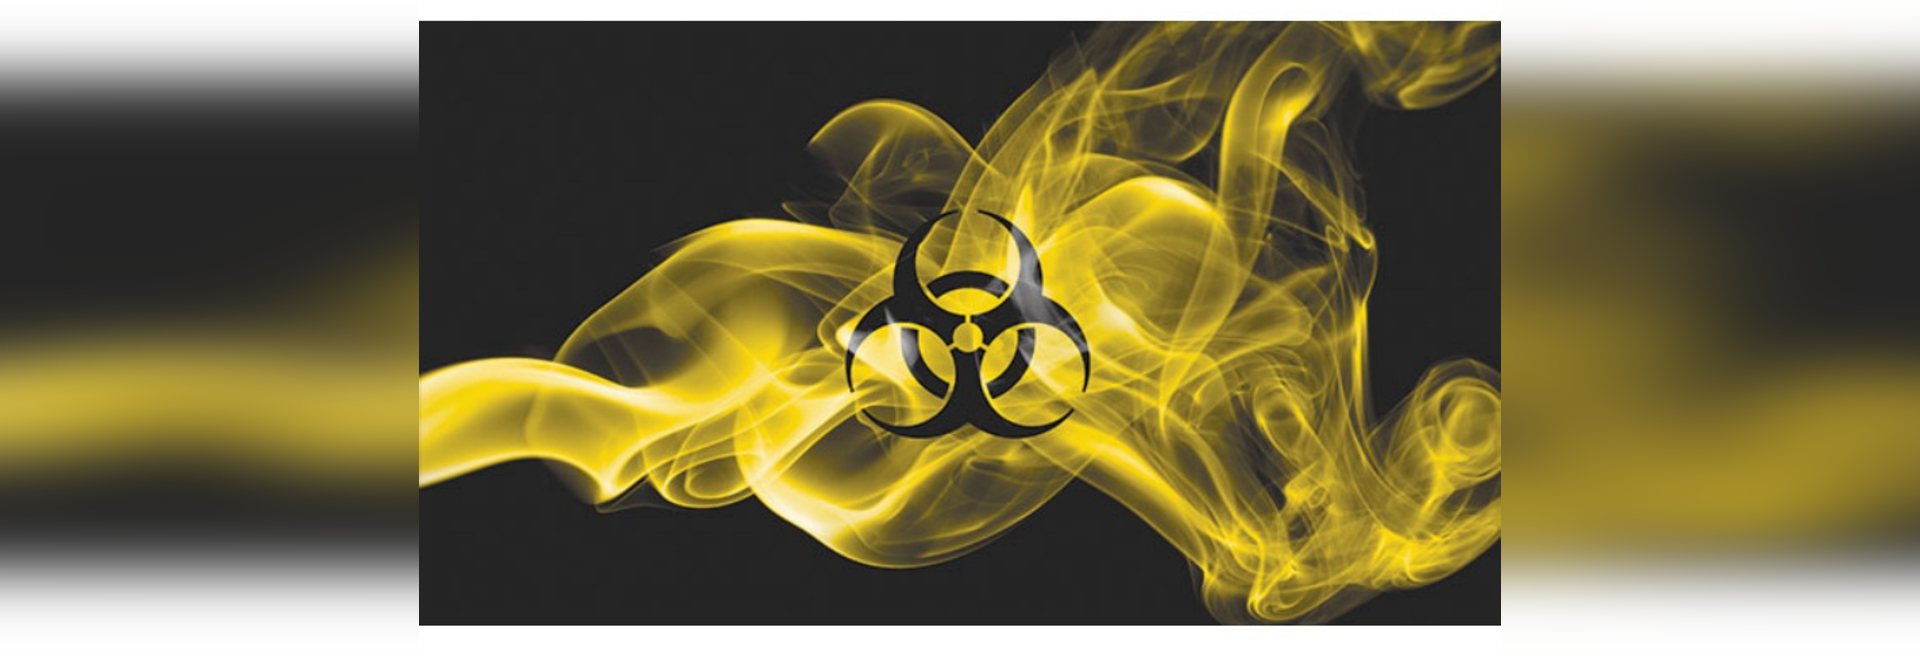 Biohazard Management